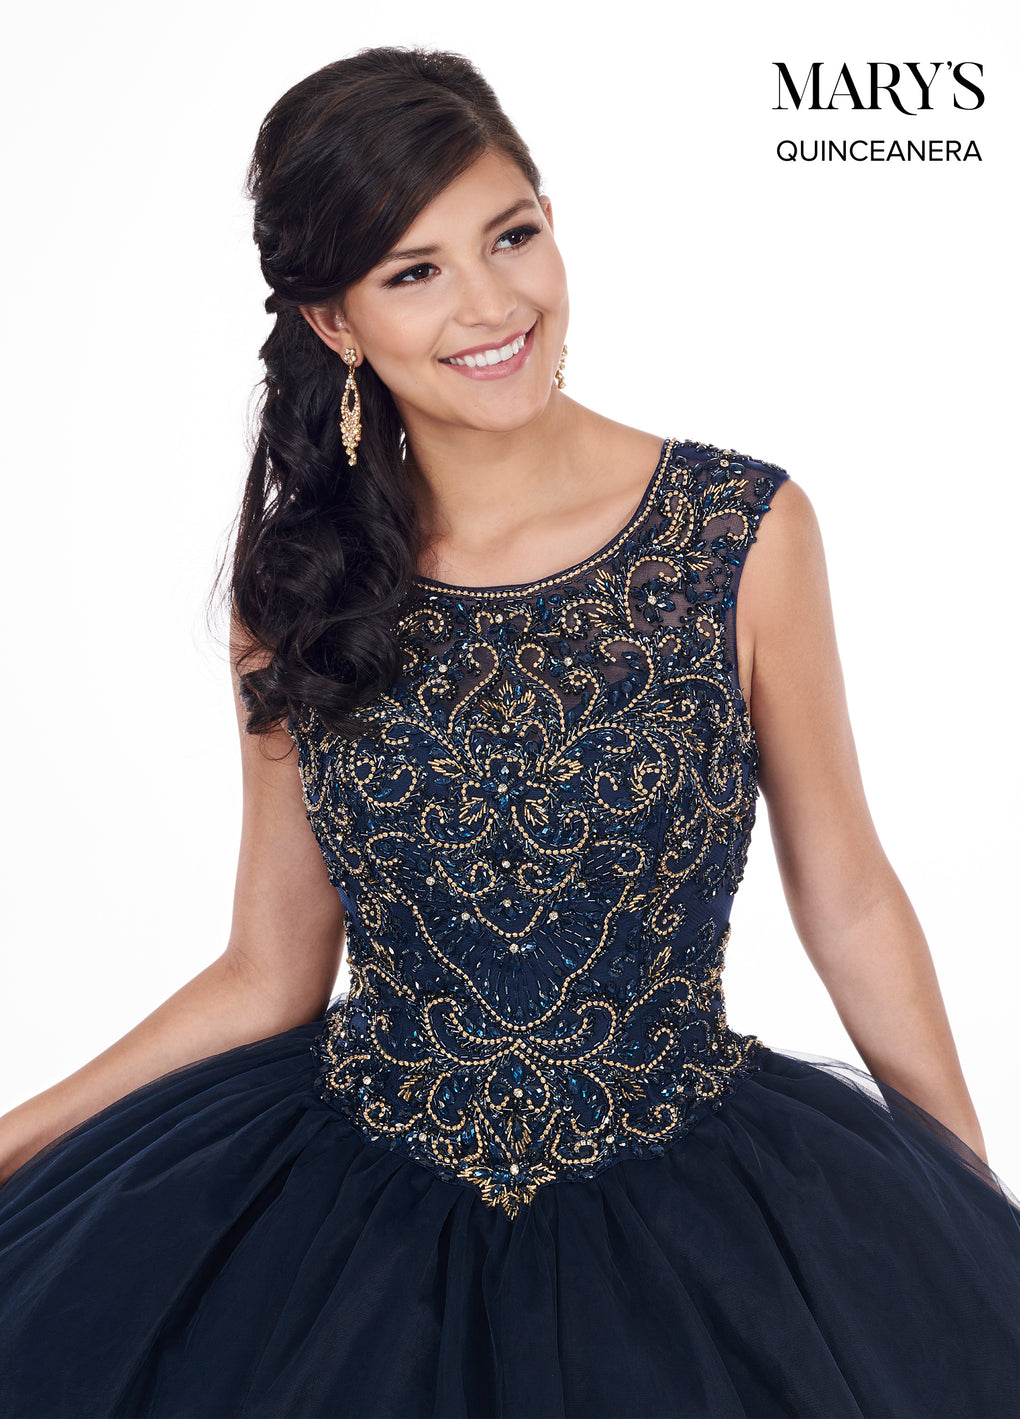 Marys Quinceanera Dresses in Peach or Midnight Blue Color